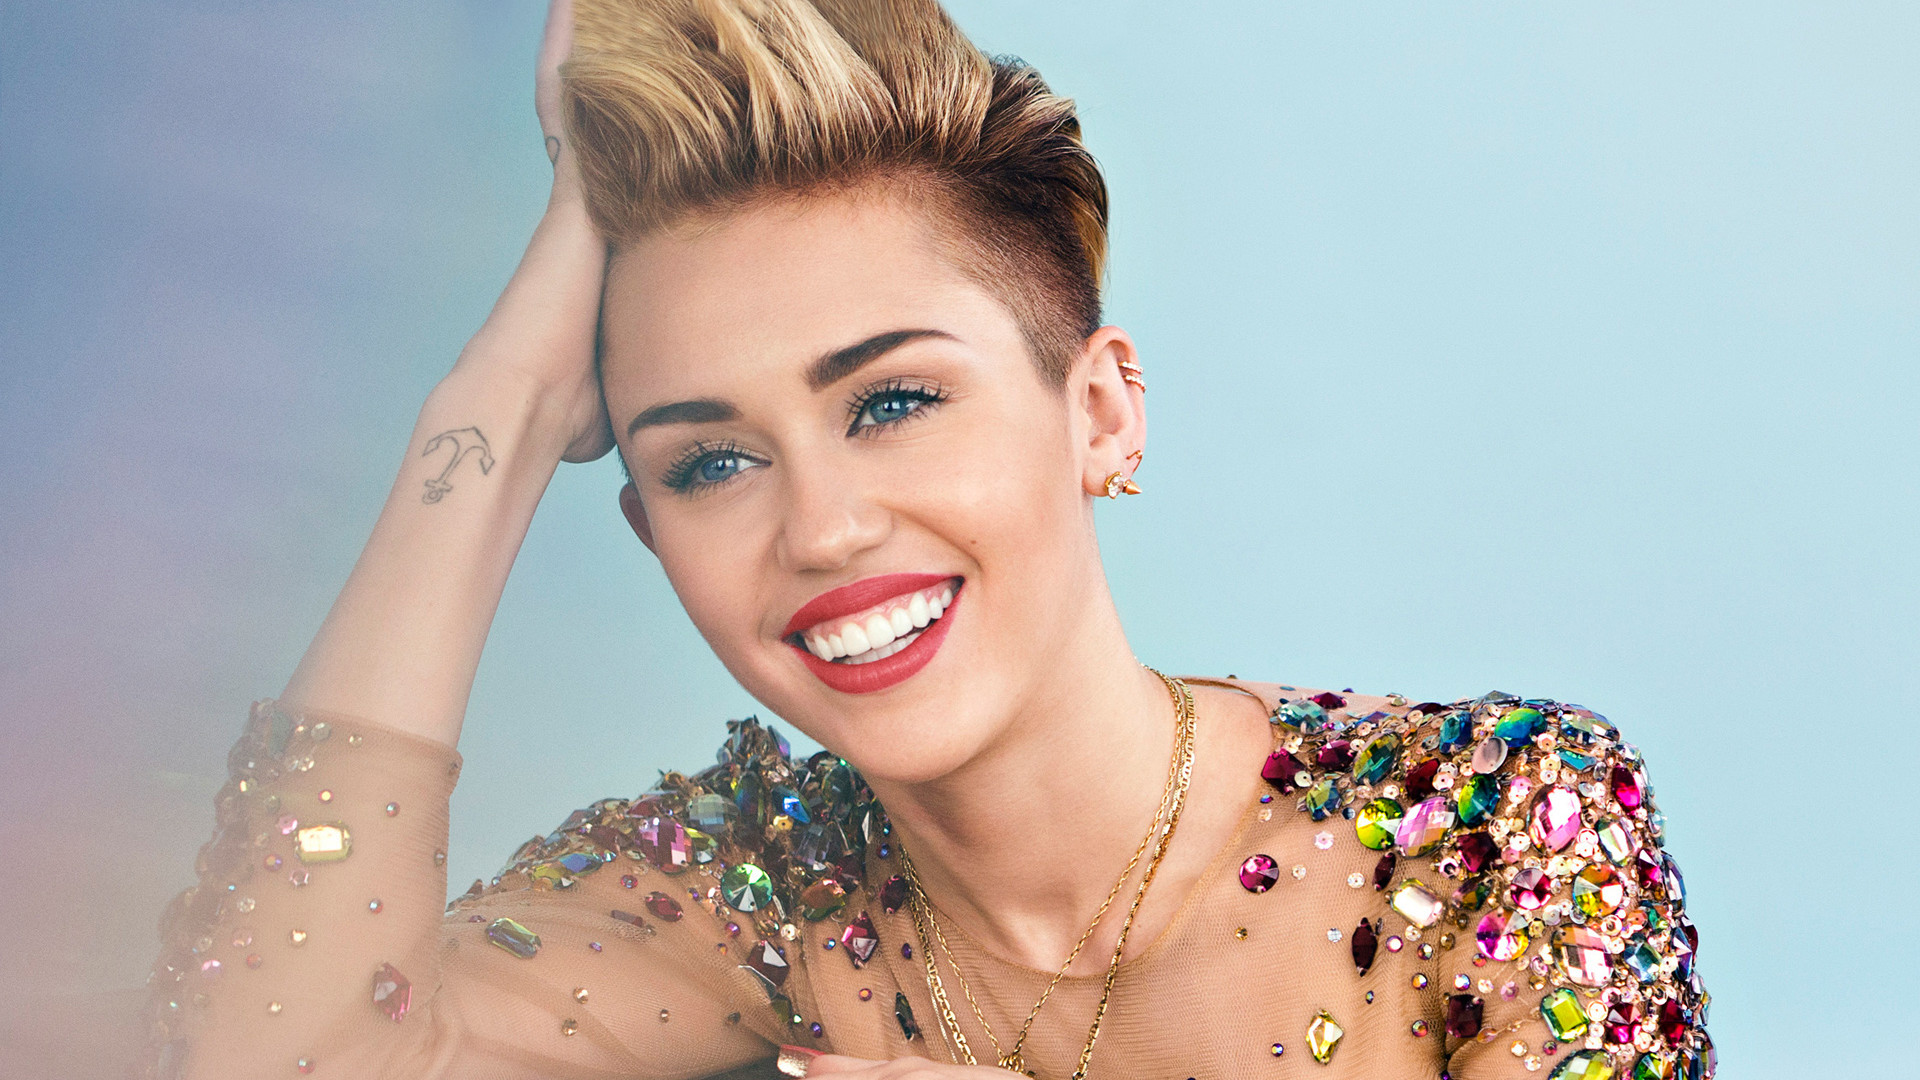 HD Miley Cyrus Wallpapers 01 – HdCoolWallpapers.Com